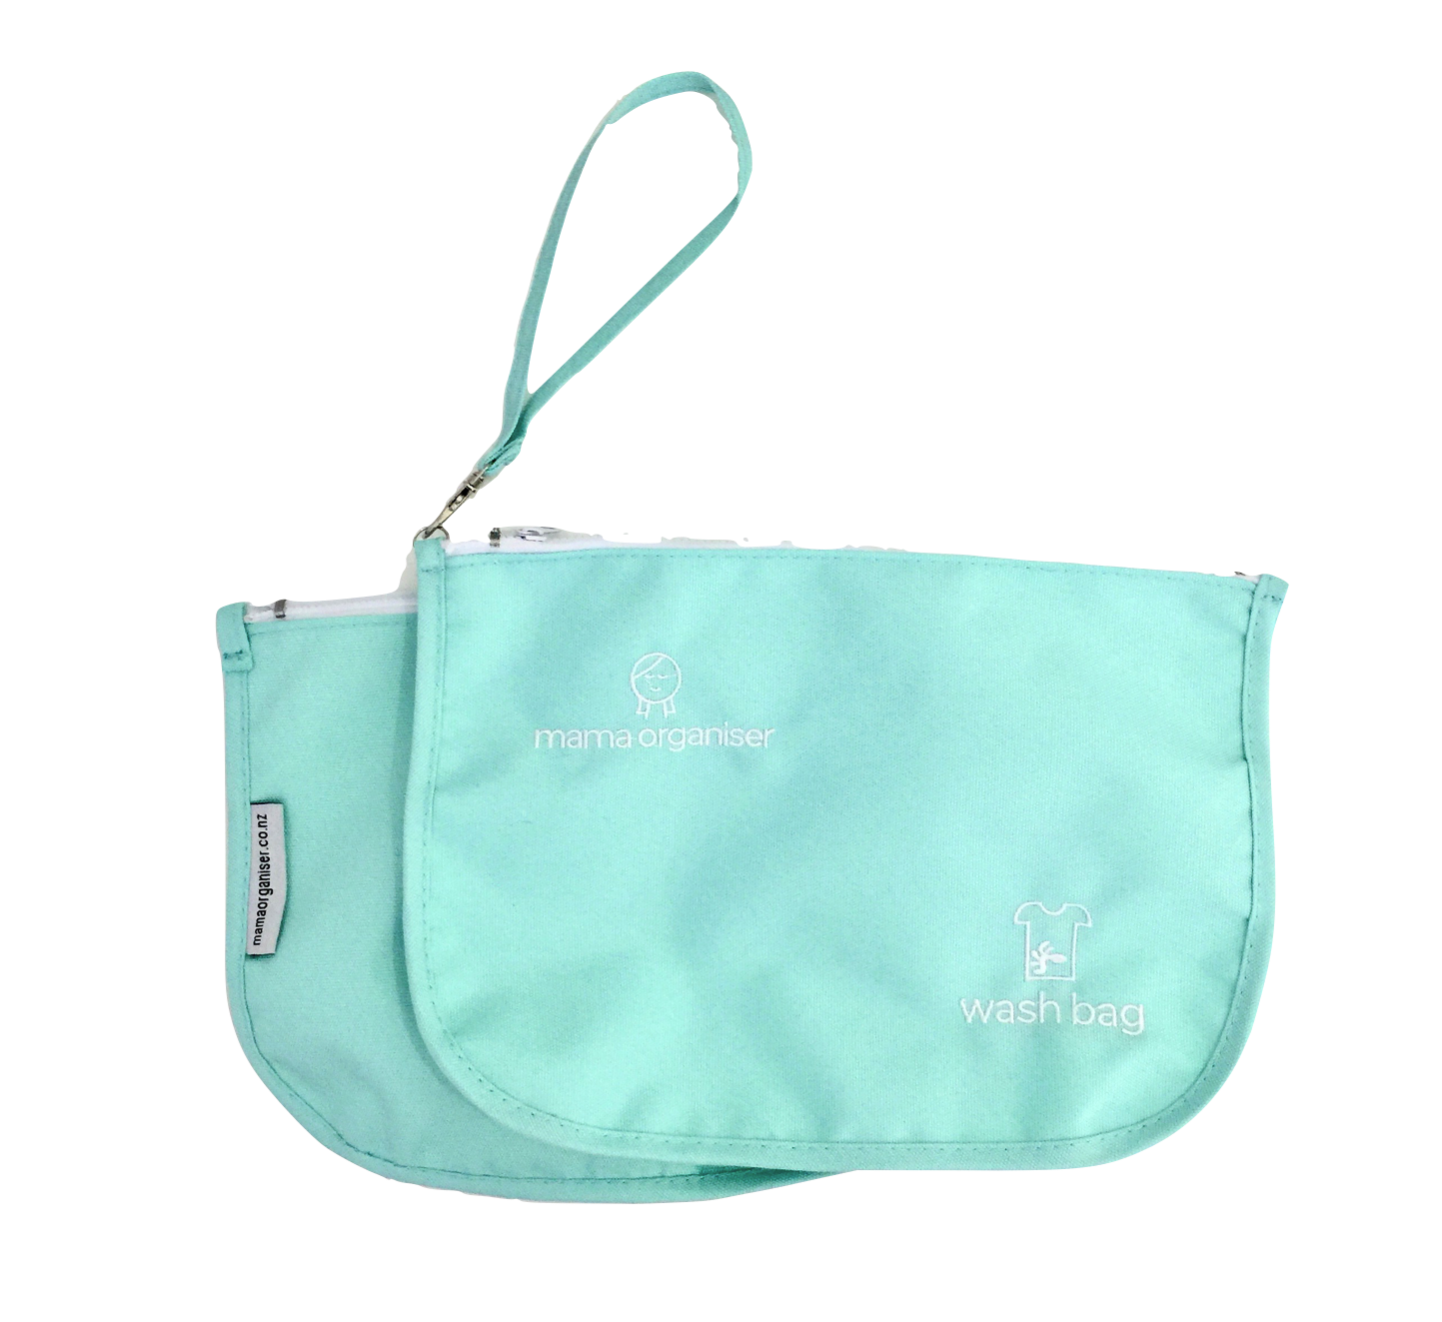 Wash/Laundry Pouch - Pastel blue water-resistant nylon on both sides. For dirty nappies, wipes, clothes, bibs etc. Keeps your other gear tidy and clean until you get home to wash.